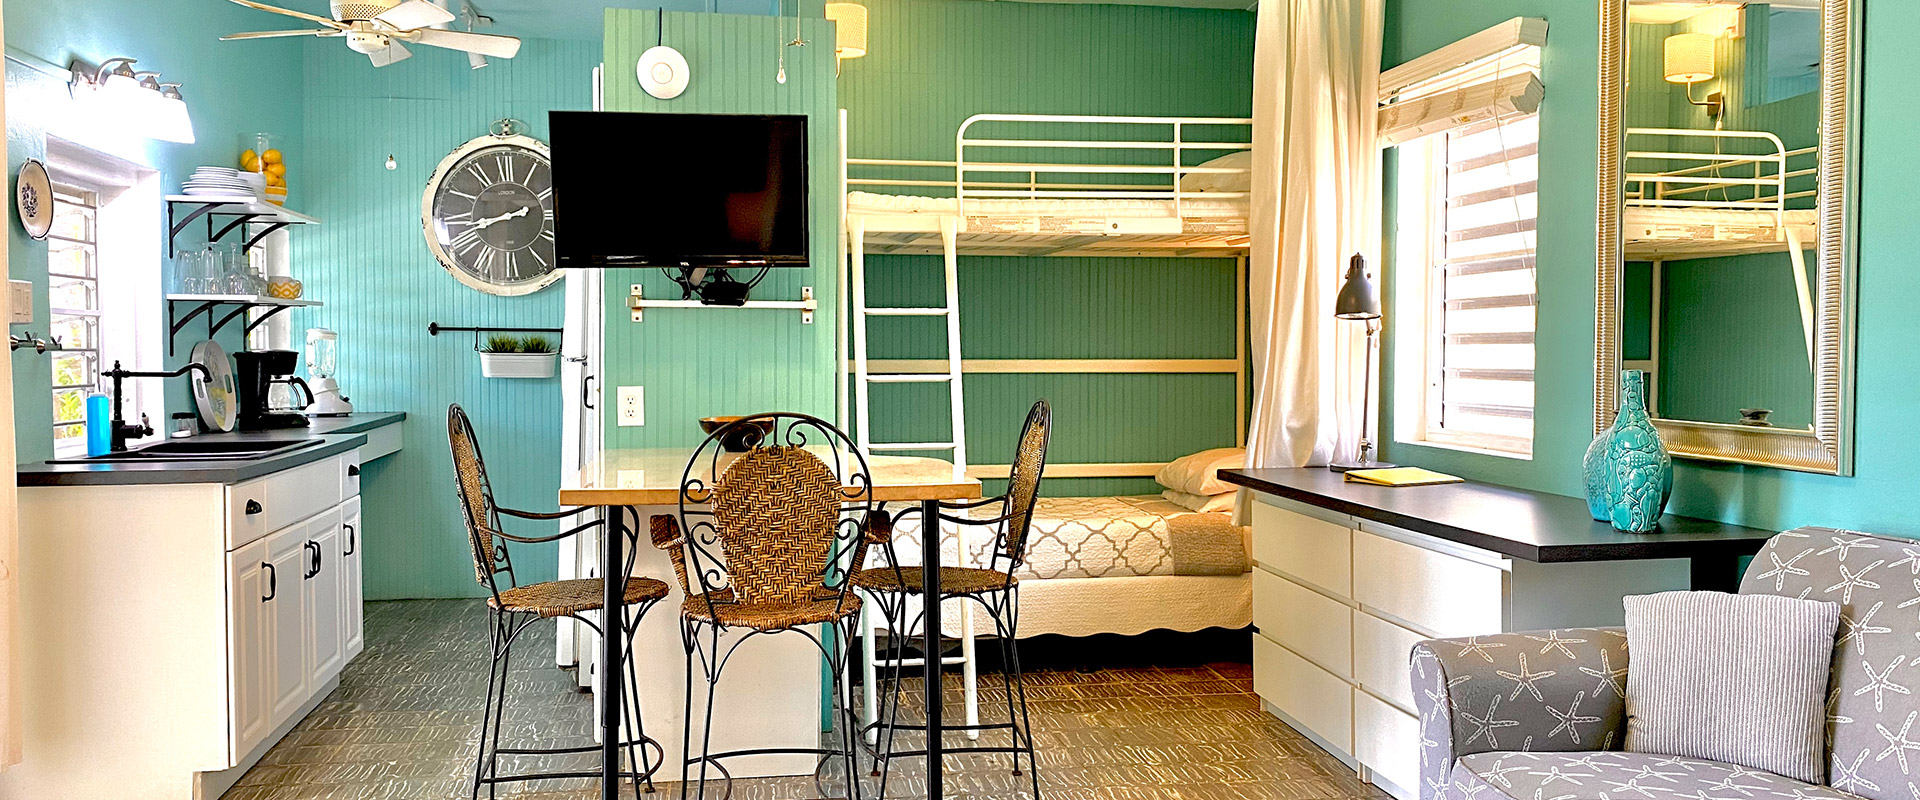 Commodore---Room-Overview-from-Bedroom